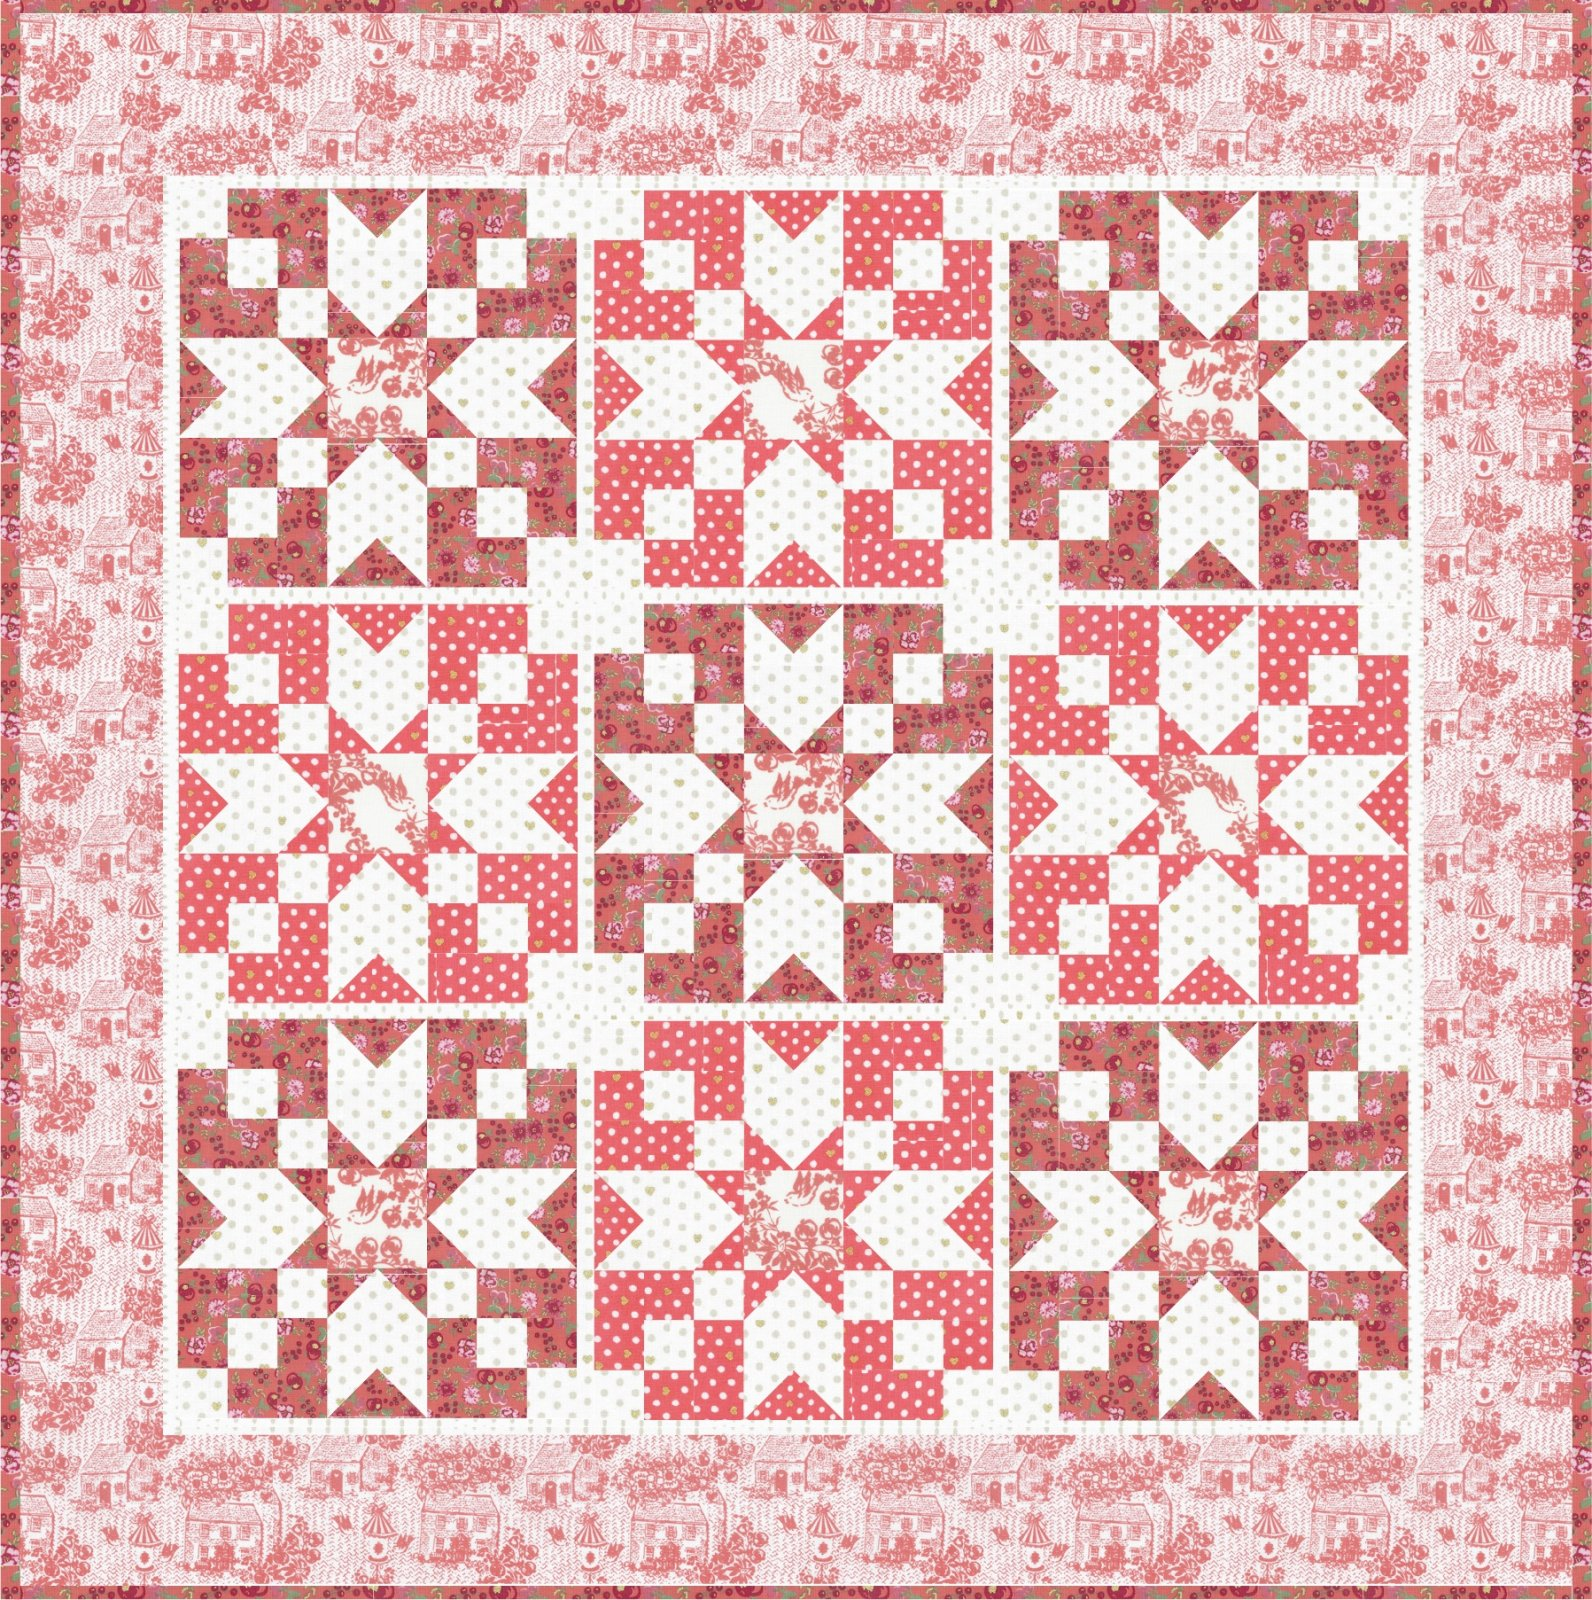 Loyal Heights Star Quilt